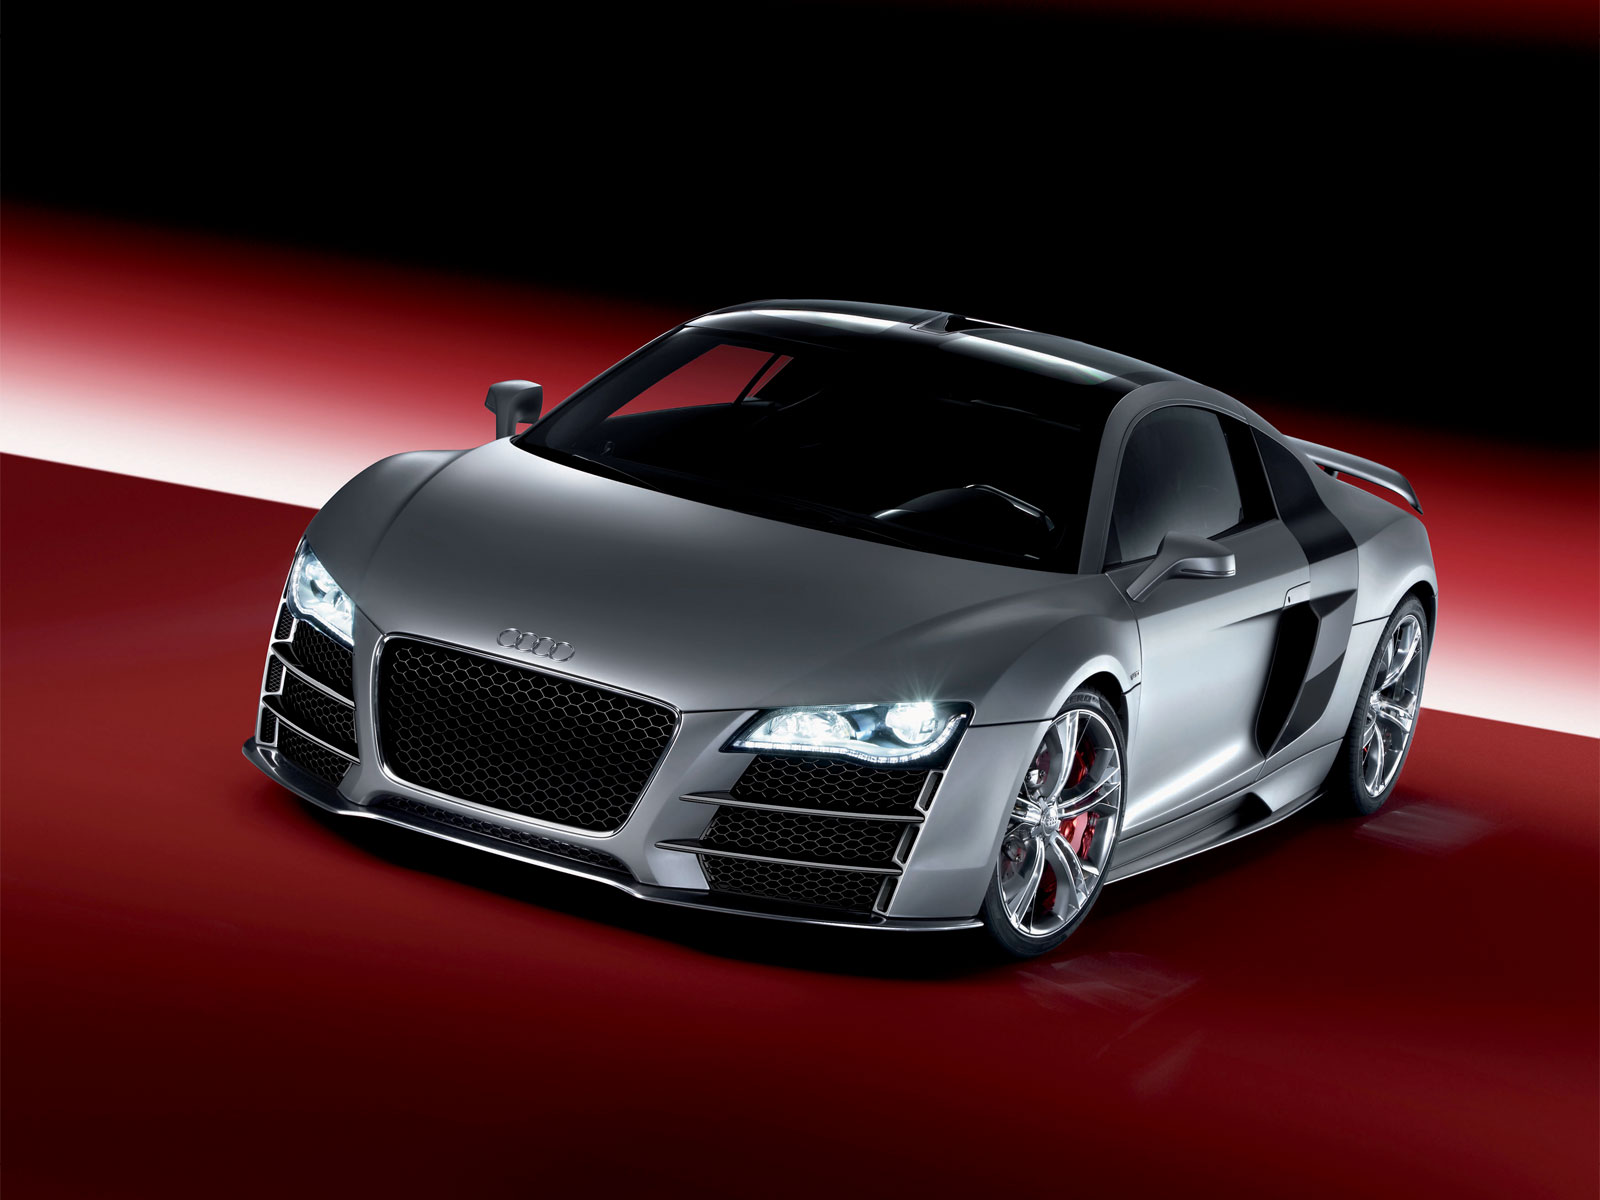 2018 audi r8 v10 plus top speed 17